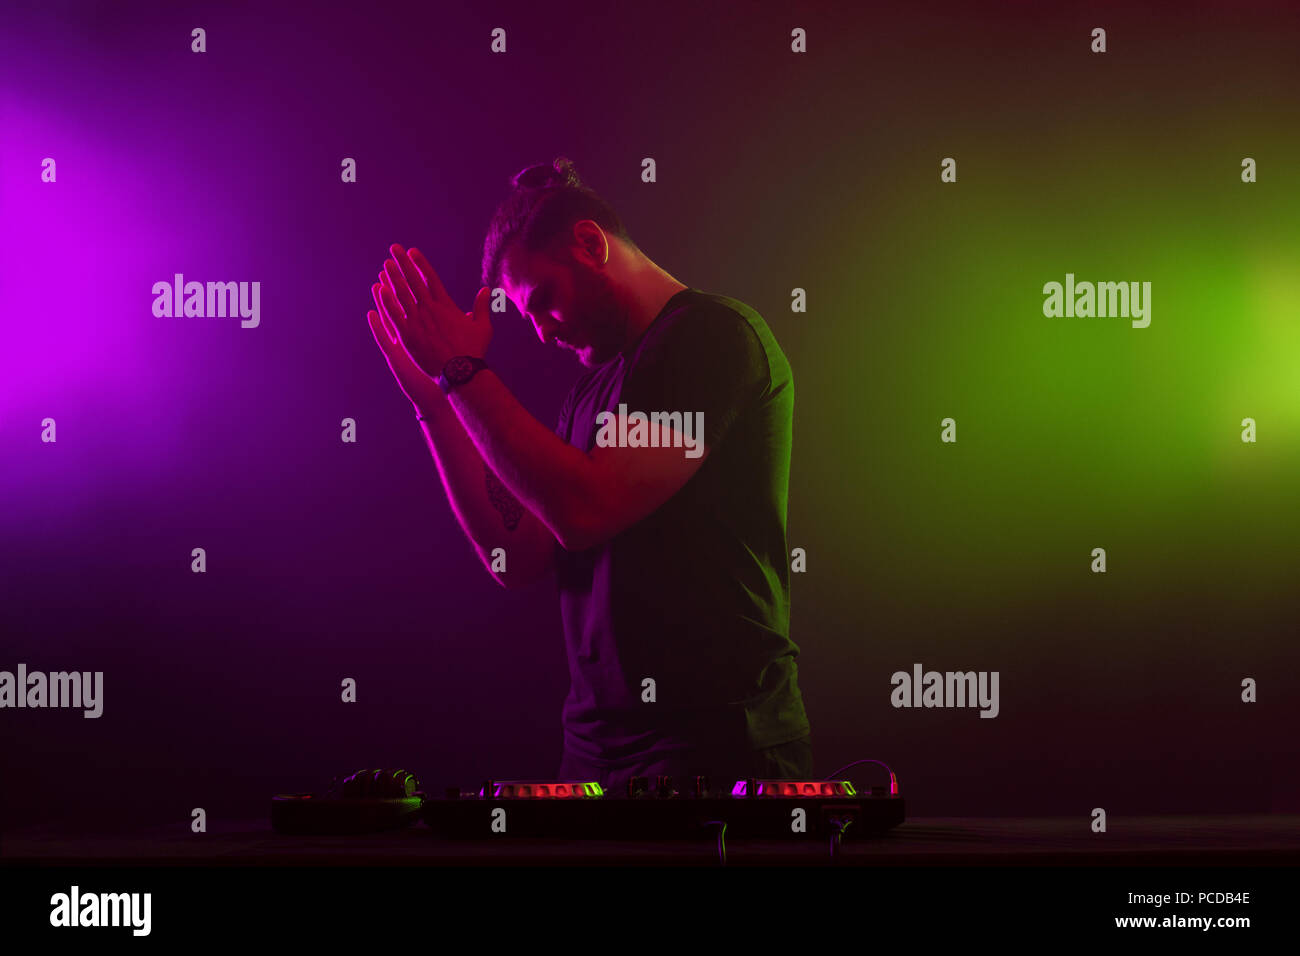 Handsome DJ in a black T-shirt at work mixing sound on her decks at a party or night club with colourful smoke light background - Stock Image